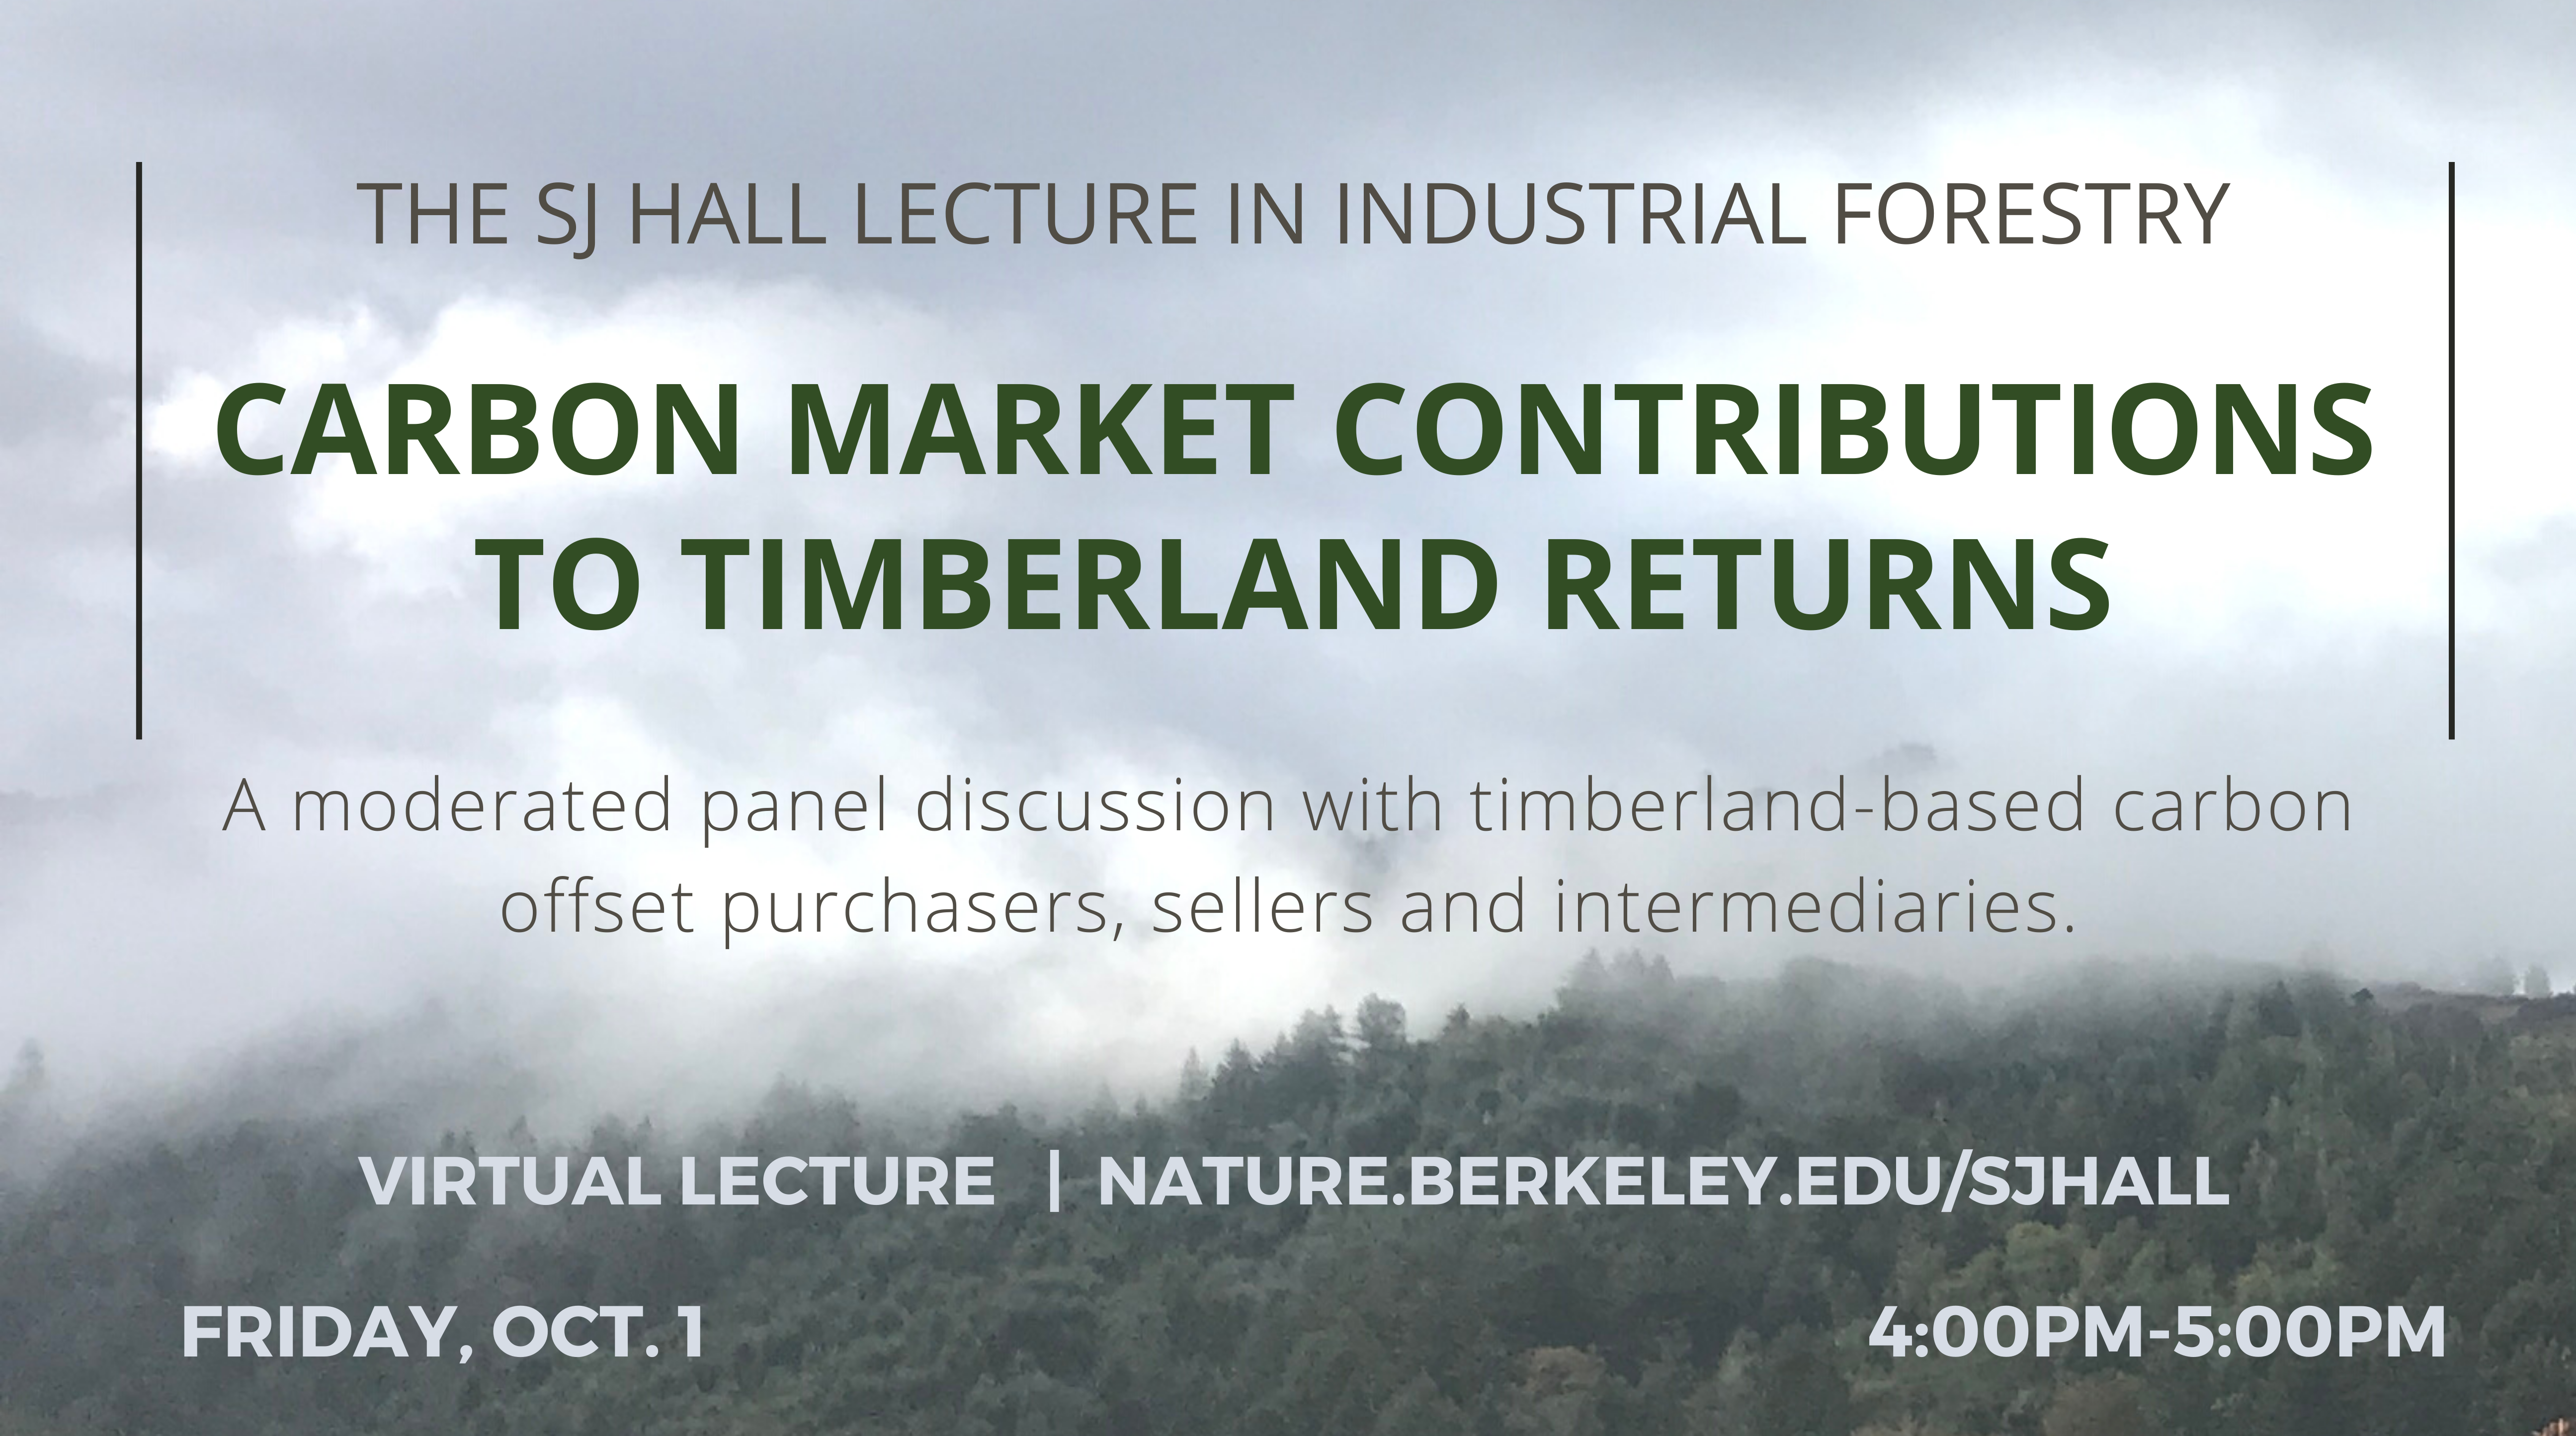 Carbon market contributions to timberland returns. A moderated panel discussion with timberland-bawsed carbon offset purchasers, sellers and intermediaries.